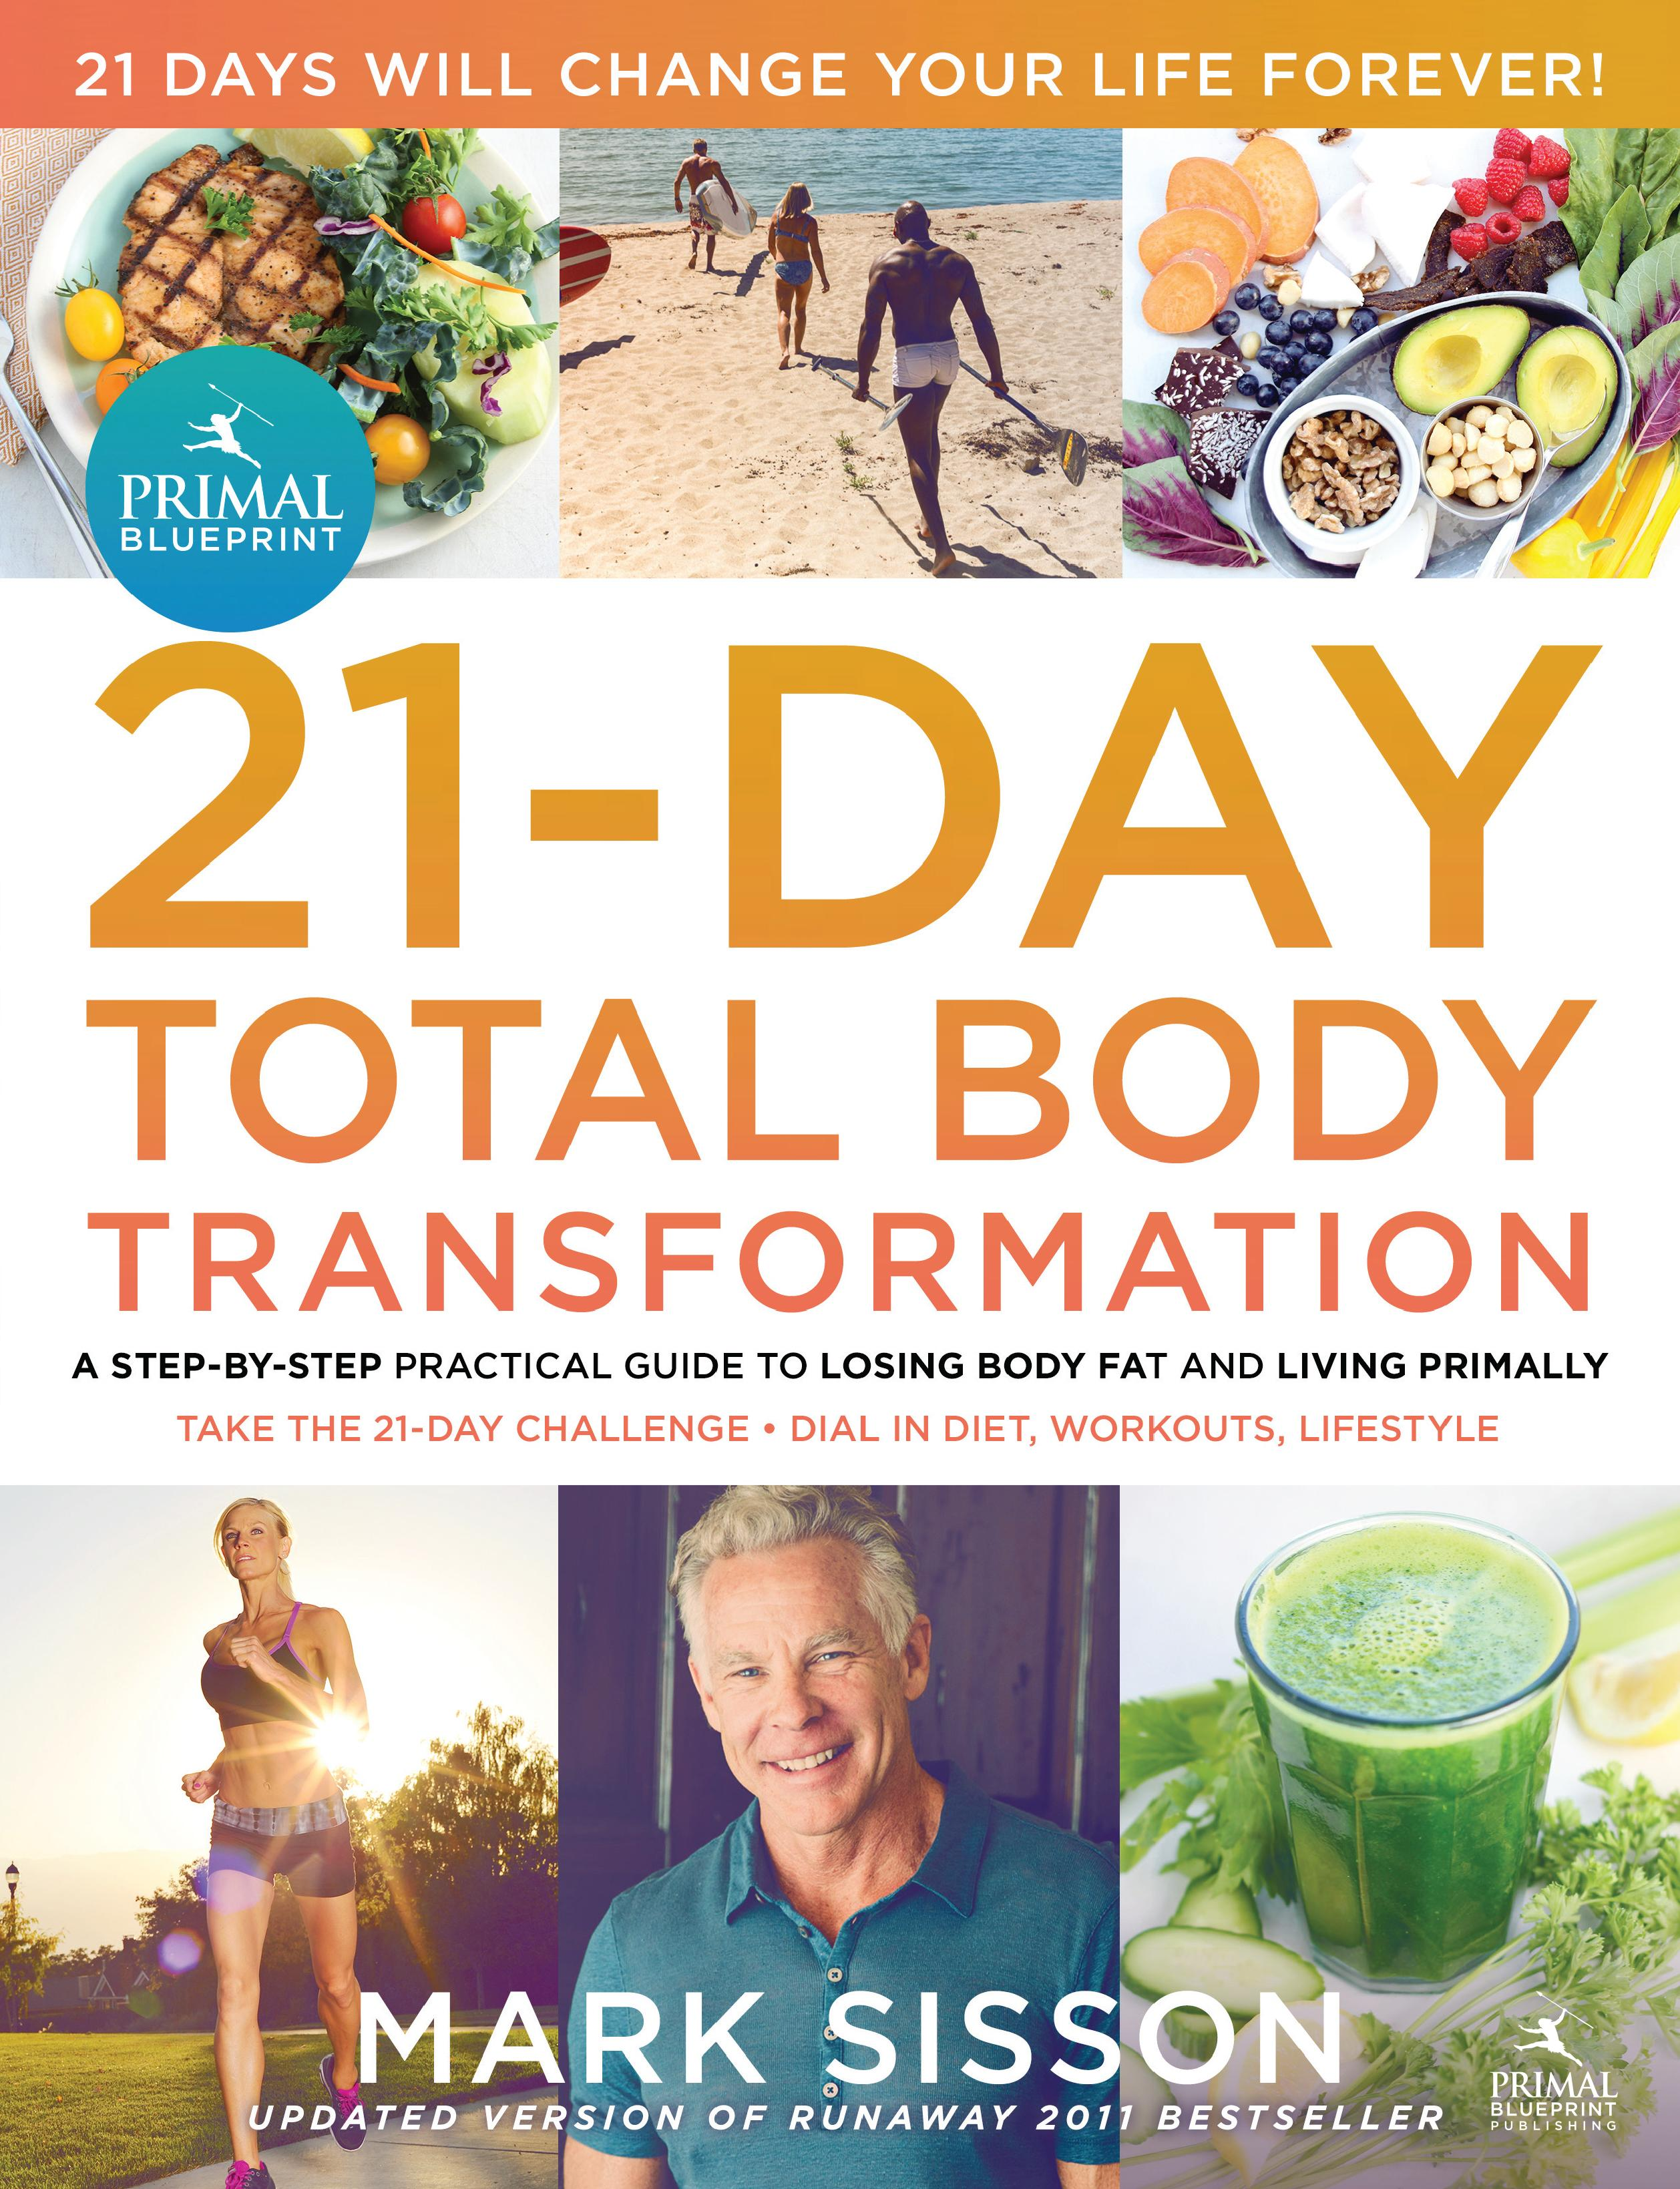 The primal blueprint 21 day total body transformation paperback the primal blueprint 21 day total body transformation paperback walmart malvernweather Images